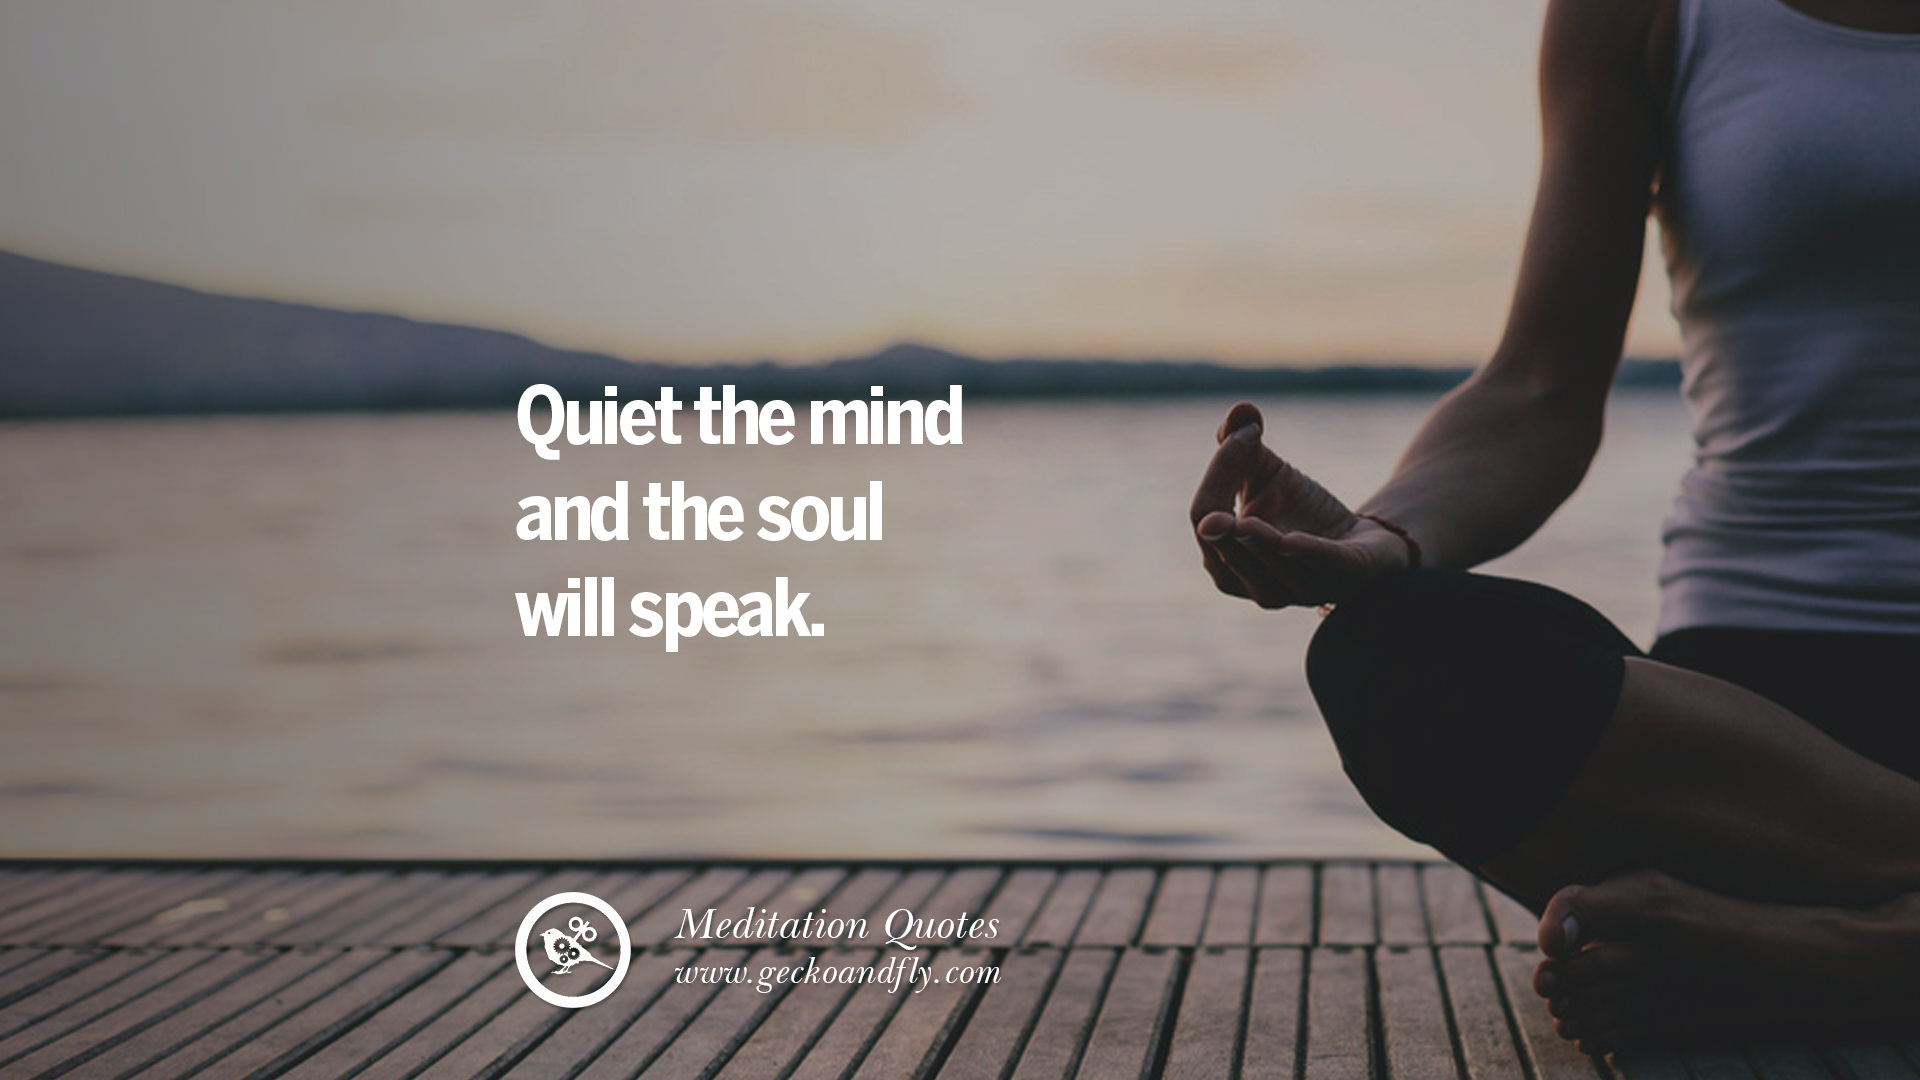 Quotes About Mindfulness 36 Famous Quotes On Mindfulness Meditation For Yoga Sleeping And